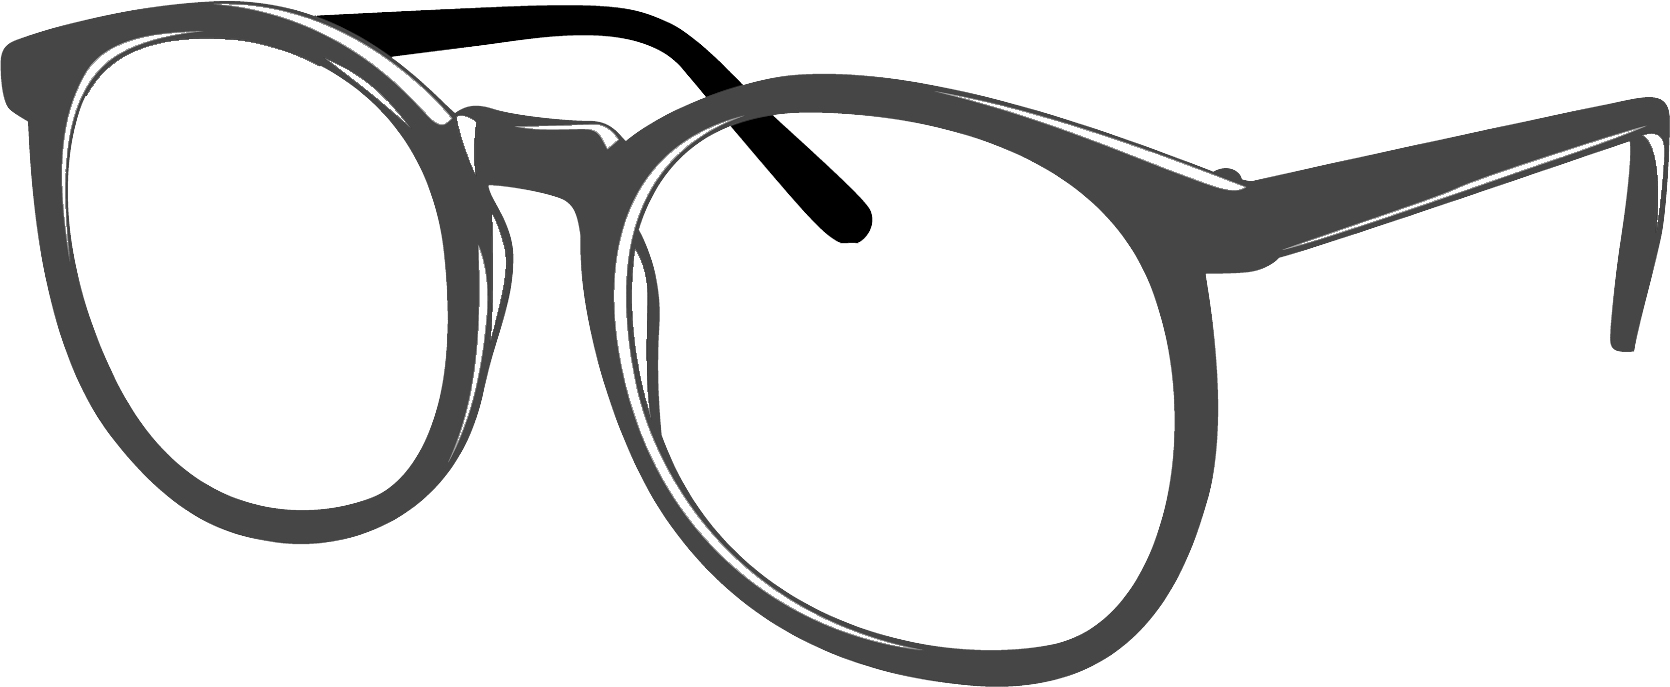 Glasses clipart 5